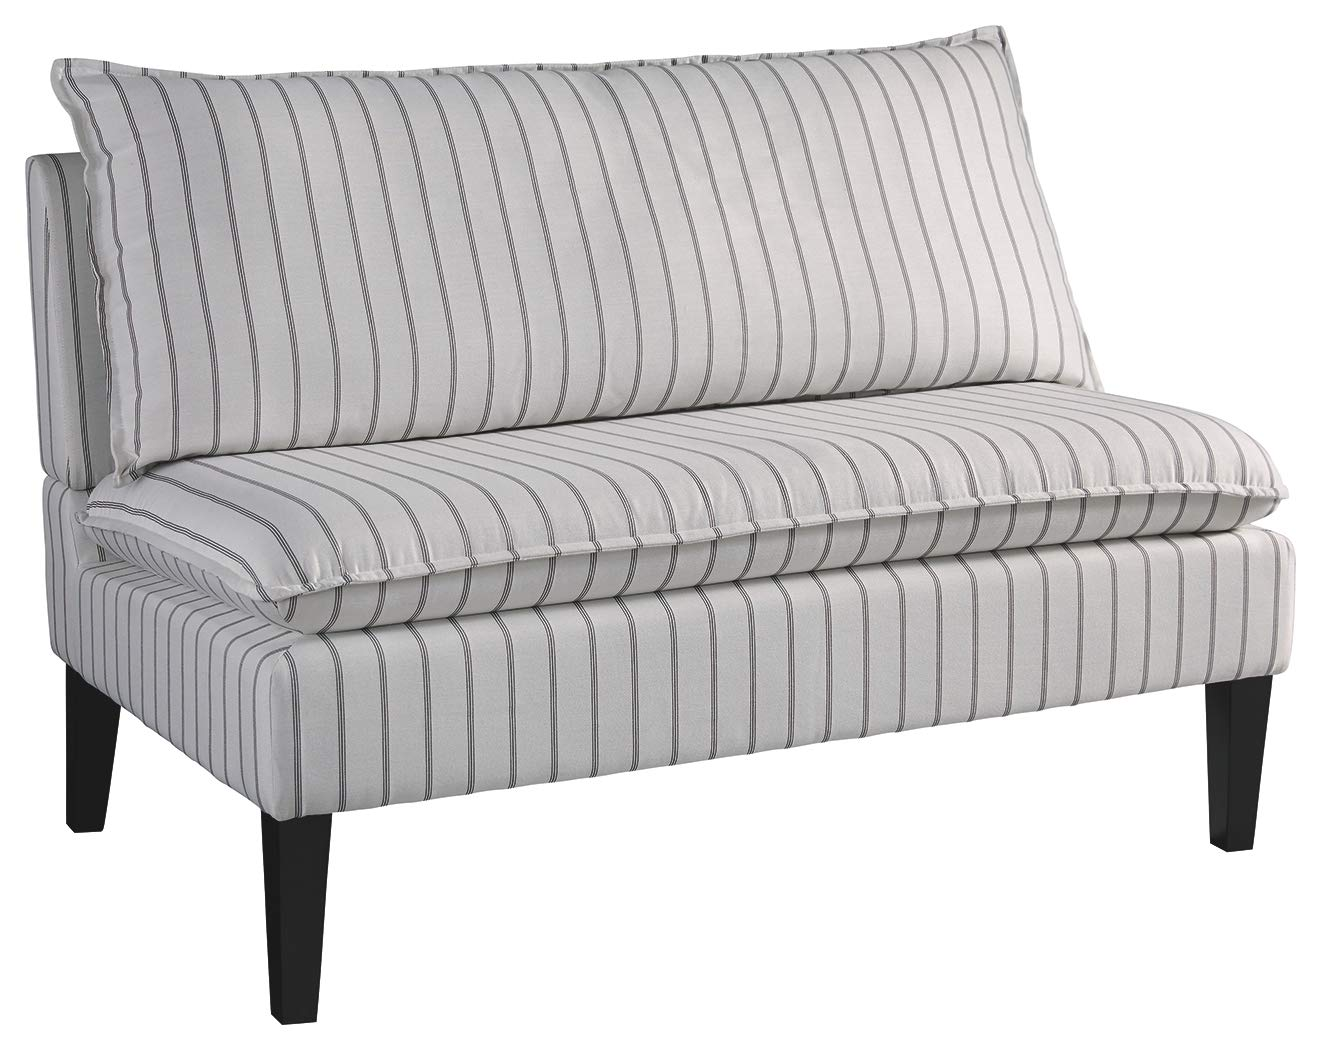 Signature Design by Ashley A3000112 Arrowrock Accent Bench, Settee by Signature Design by Ashley (Image #1)